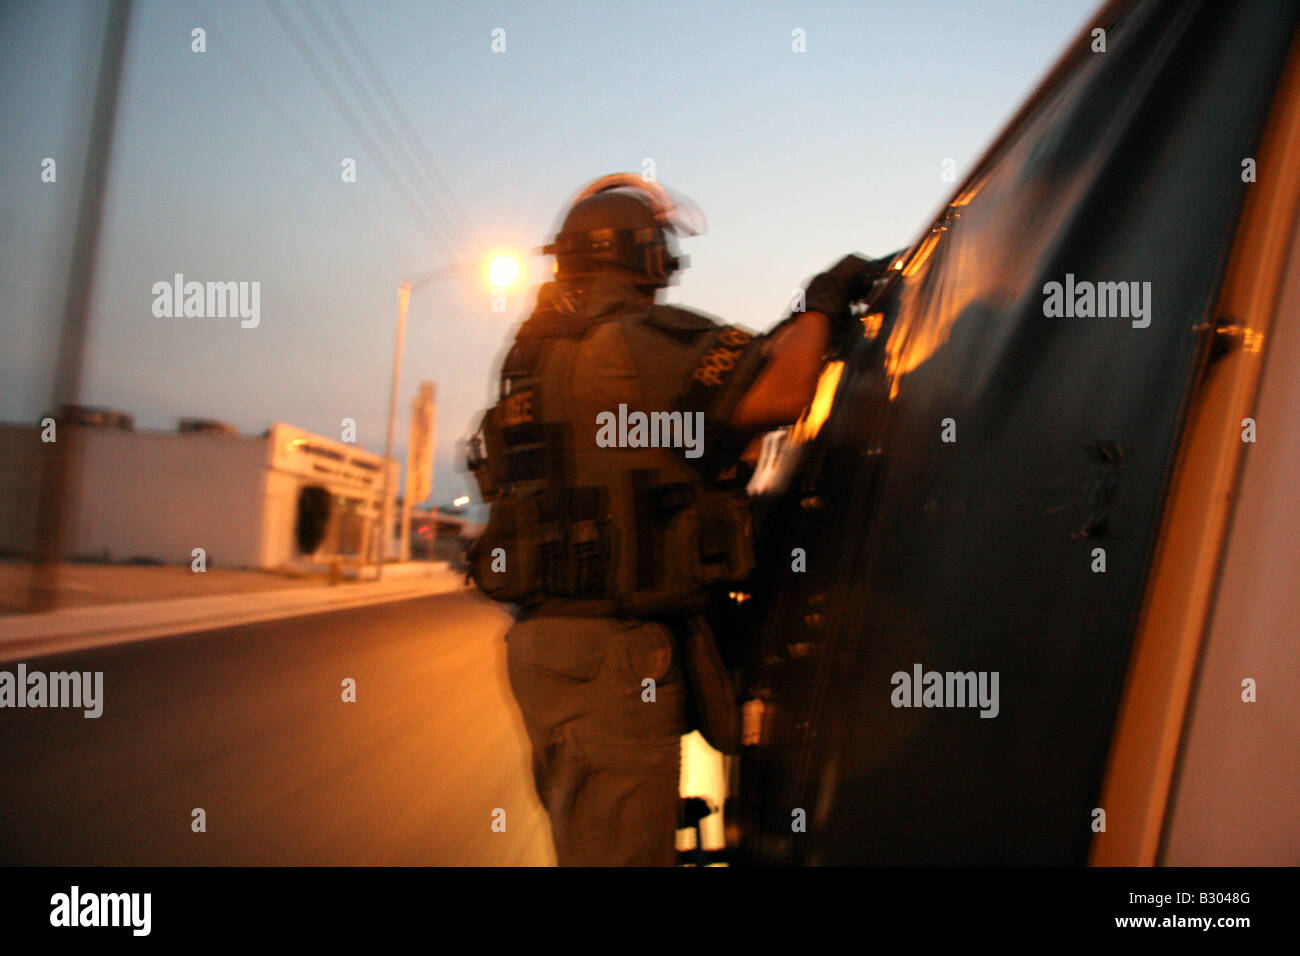 Las Vegas SWAT police officer holding onto the side of an attack van Stock Photo